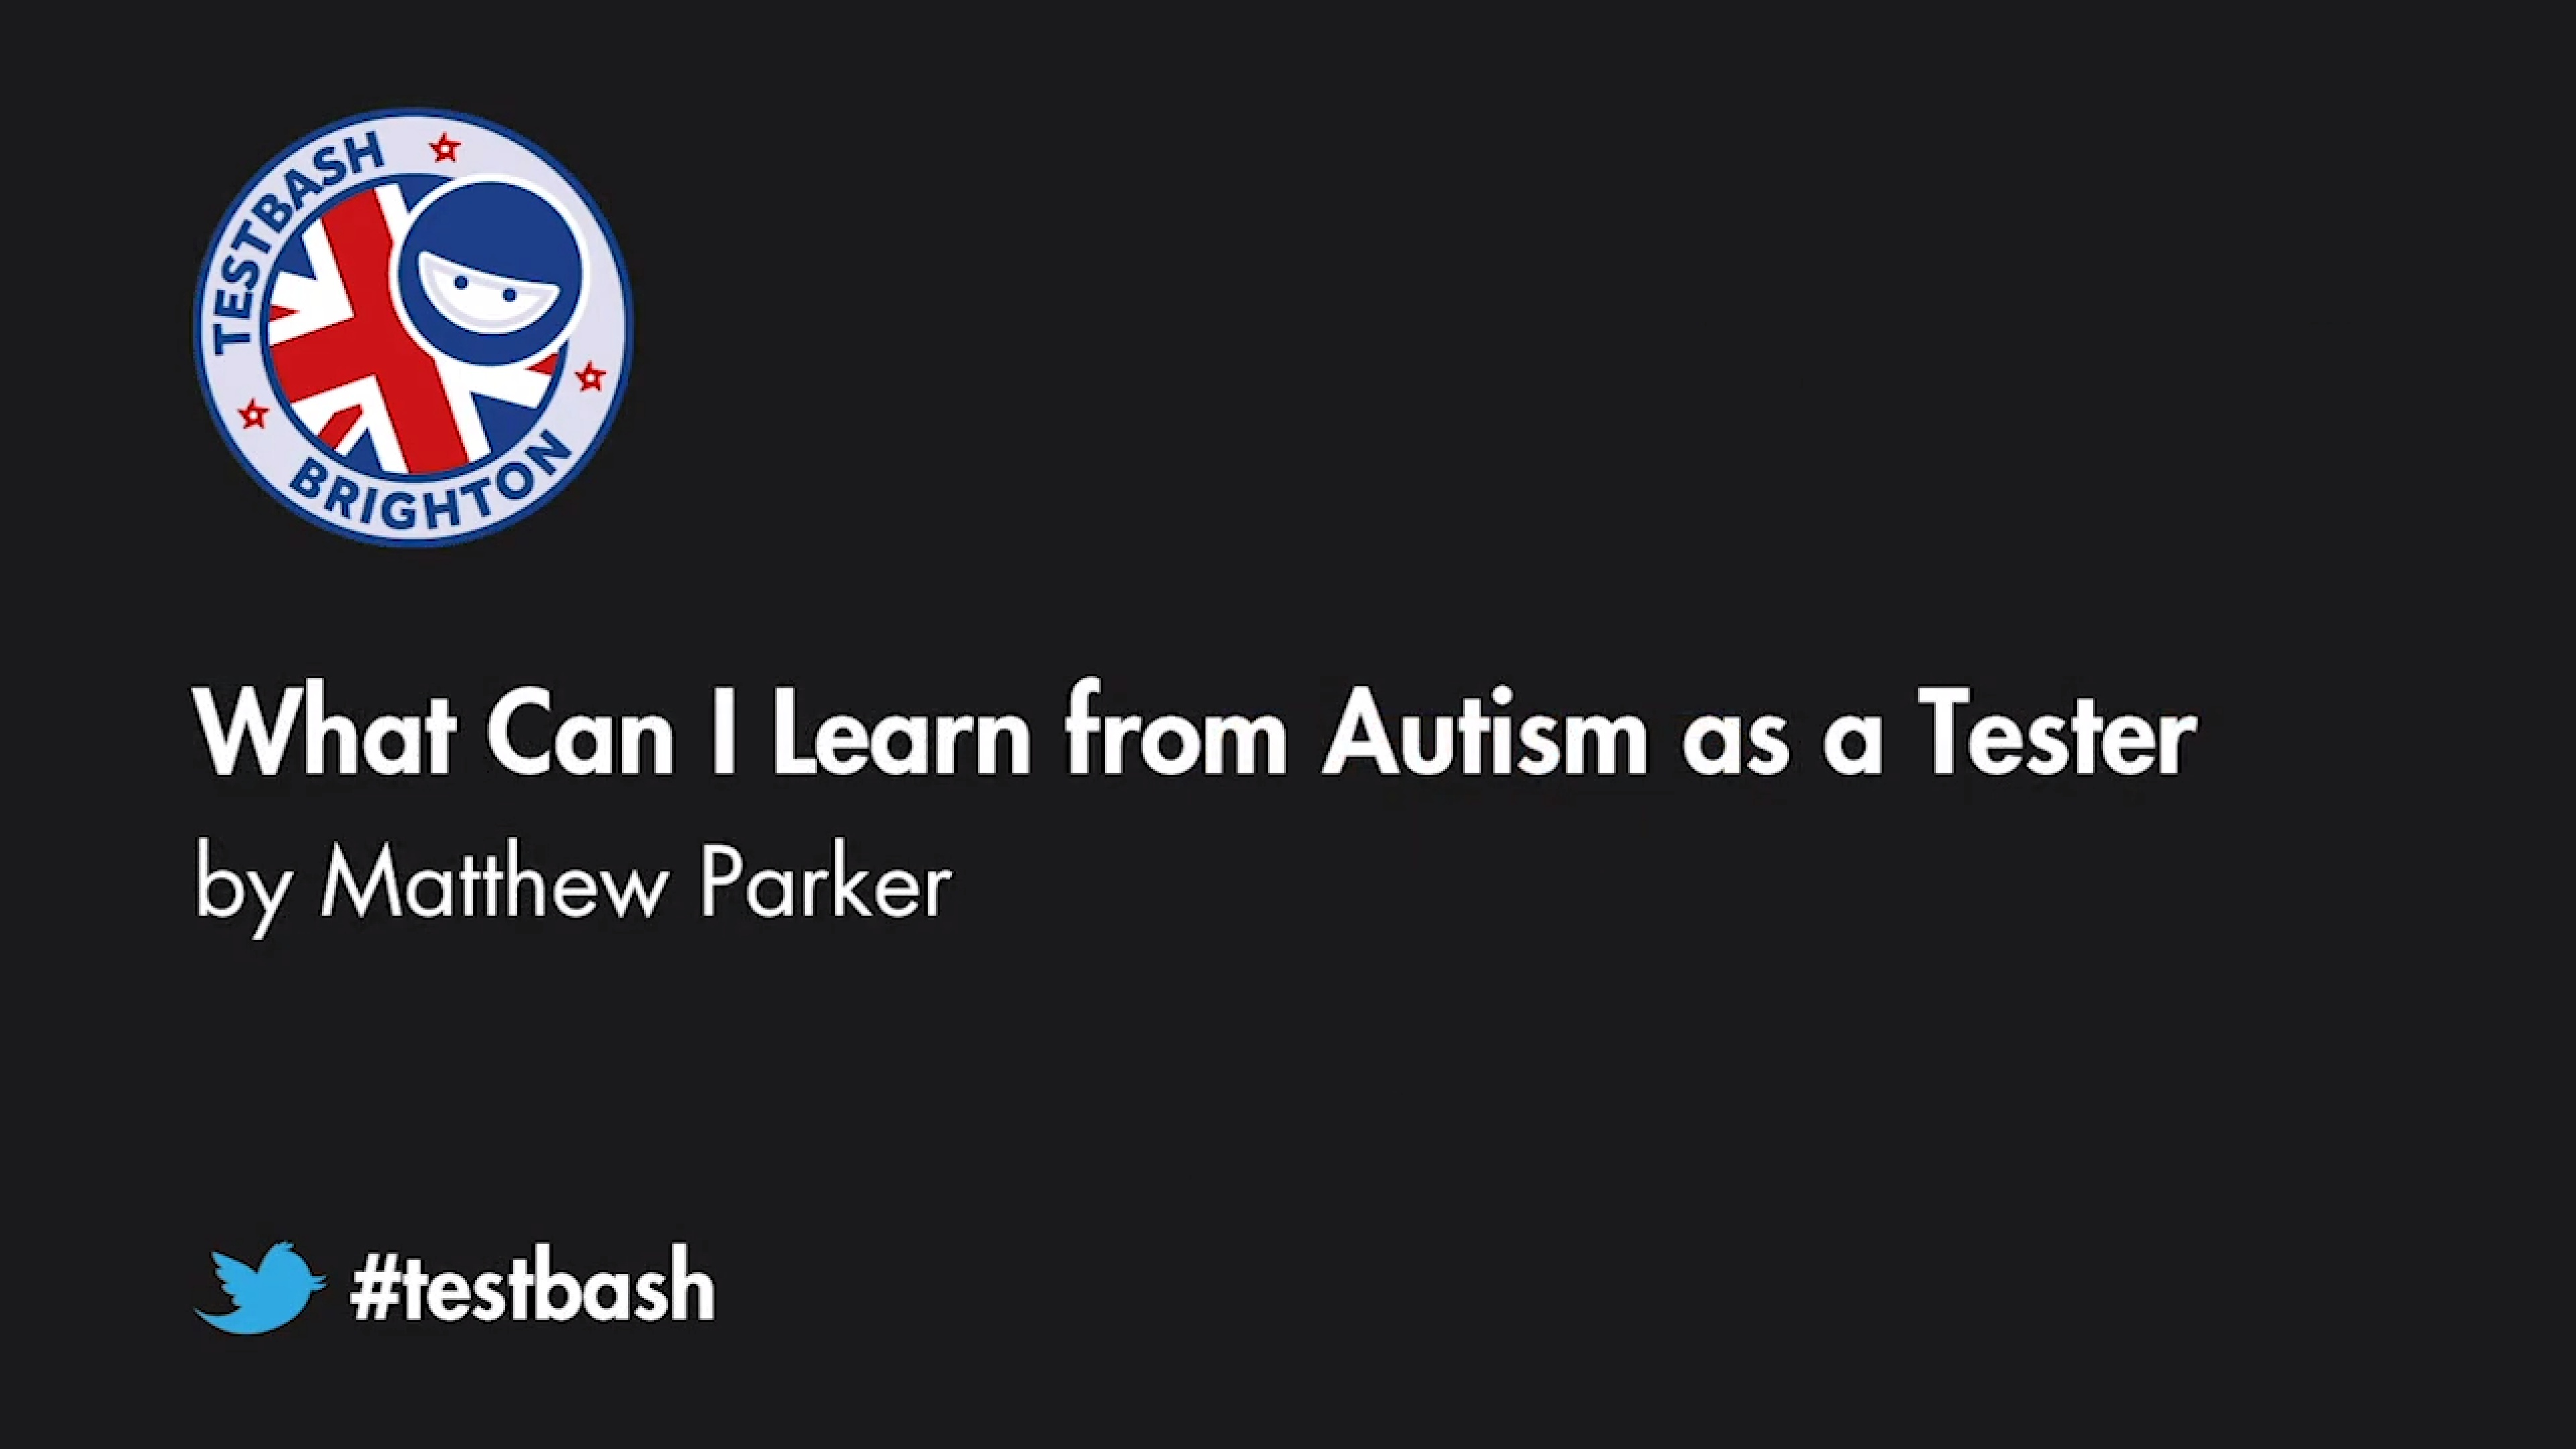 What Can I Learn from Autism as a Tester - Matthew Parker